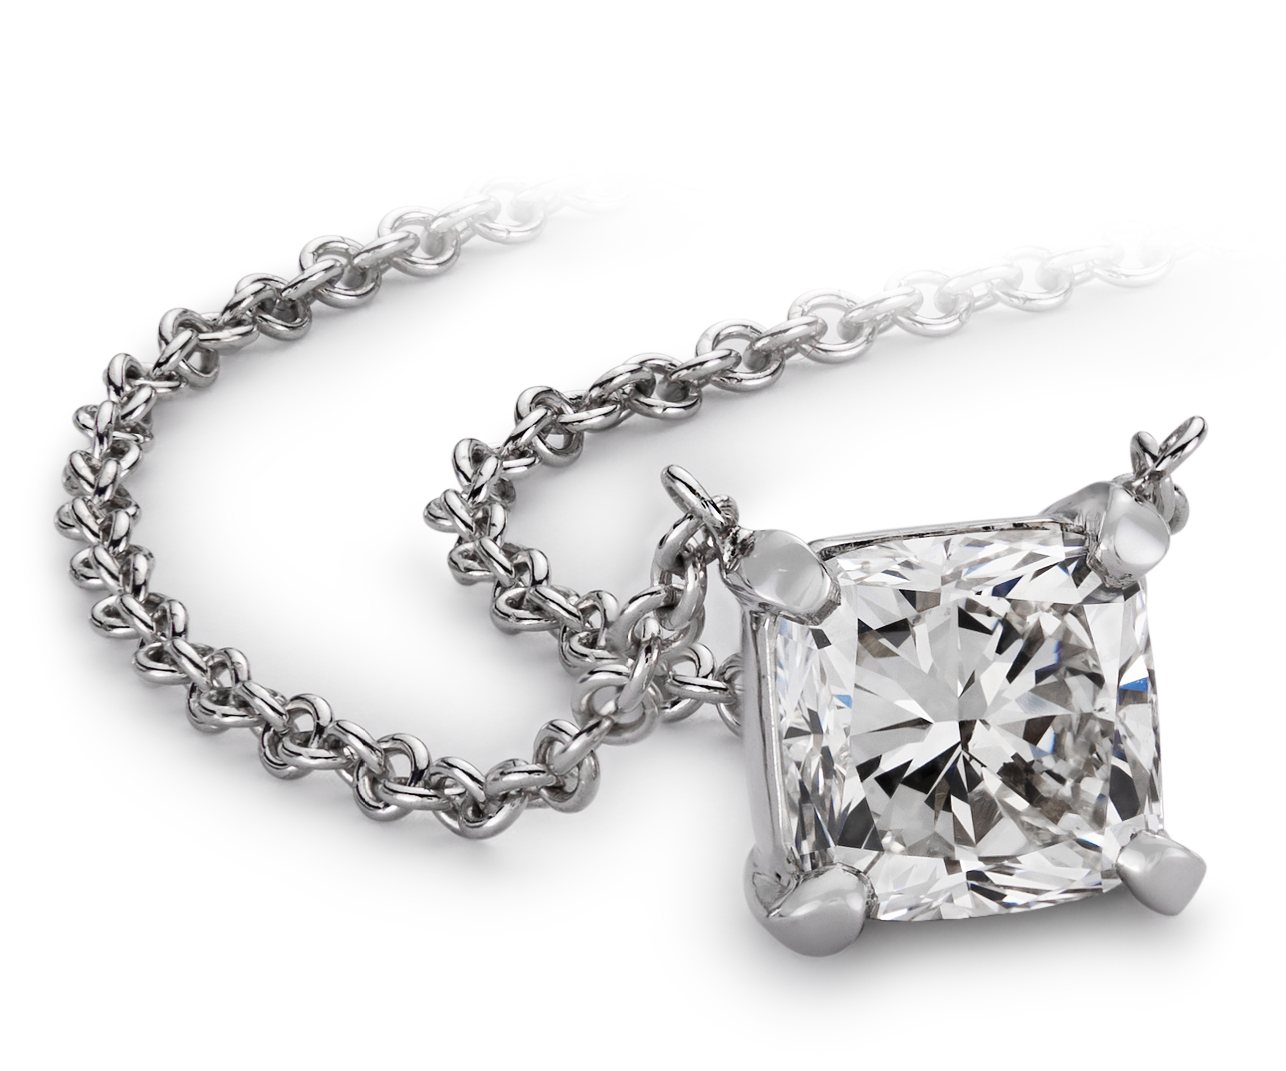 Cushion-Cut Diamond Solitaire Pendants in 14k White Gold